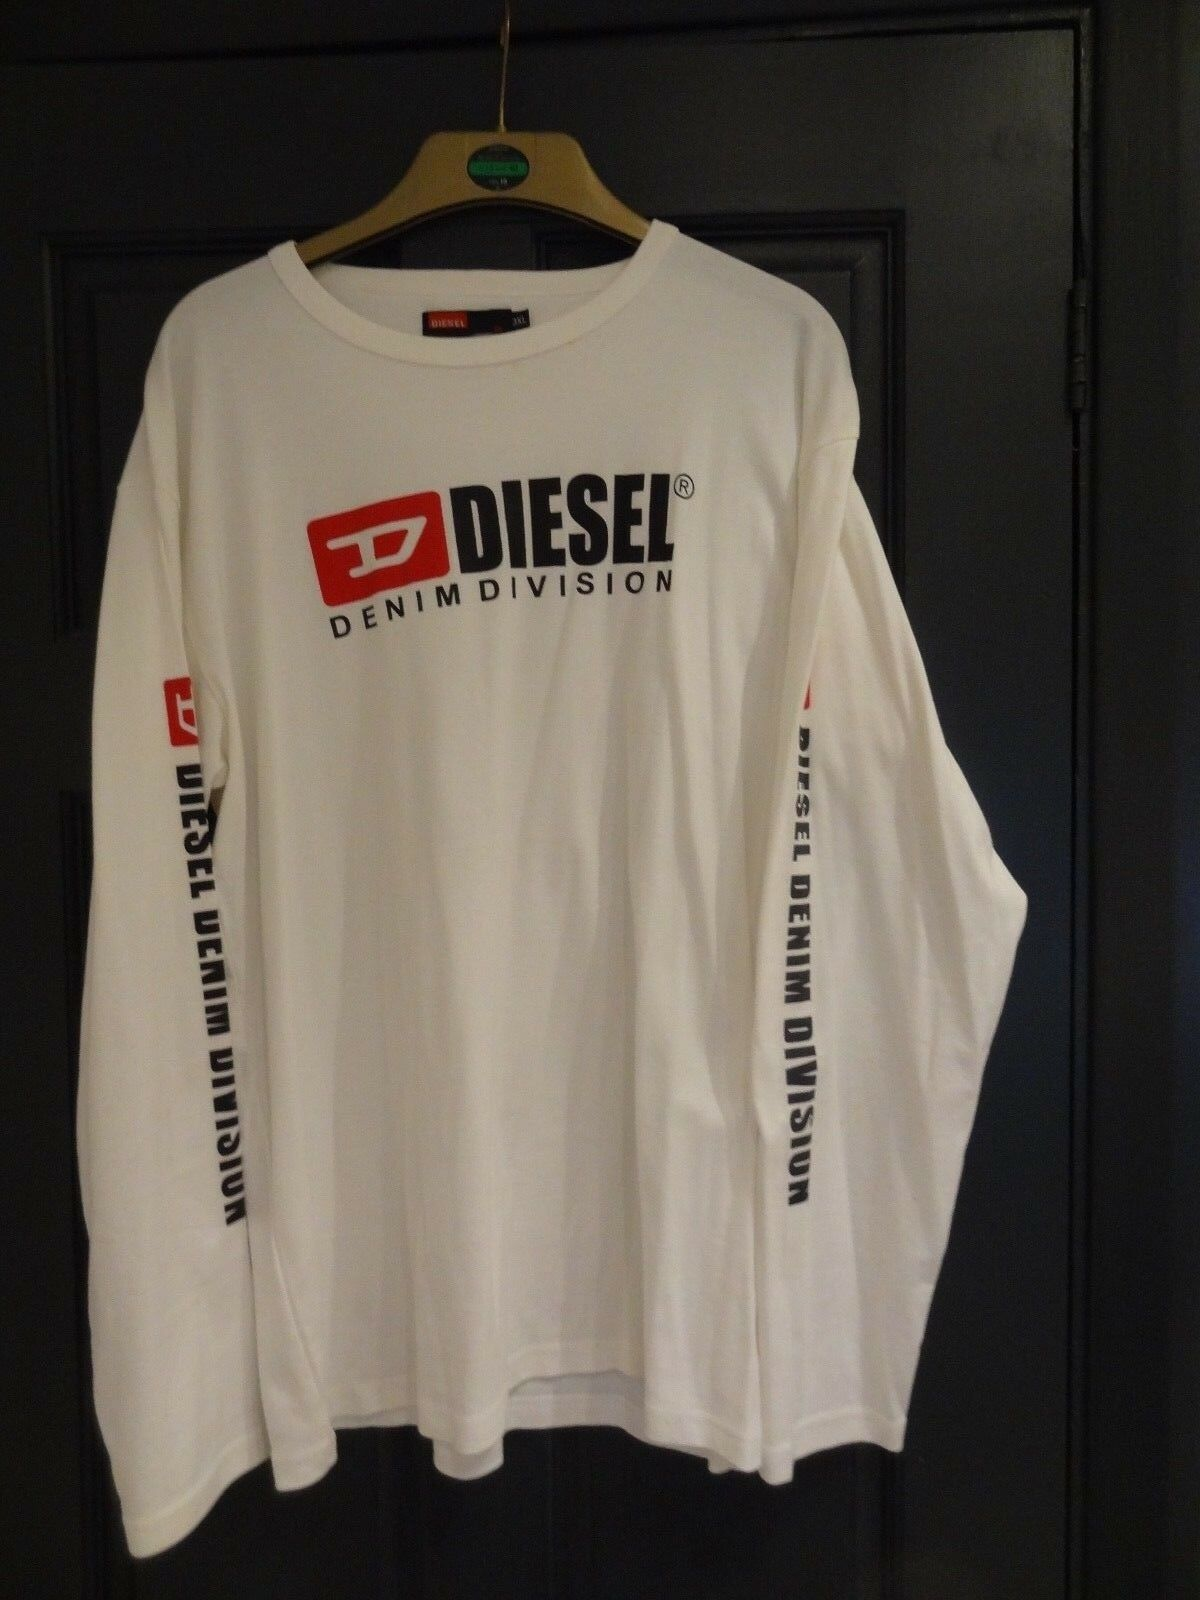 Diesel Denim Division Long Sleeve Top In White - Genuine & Highly Sought After